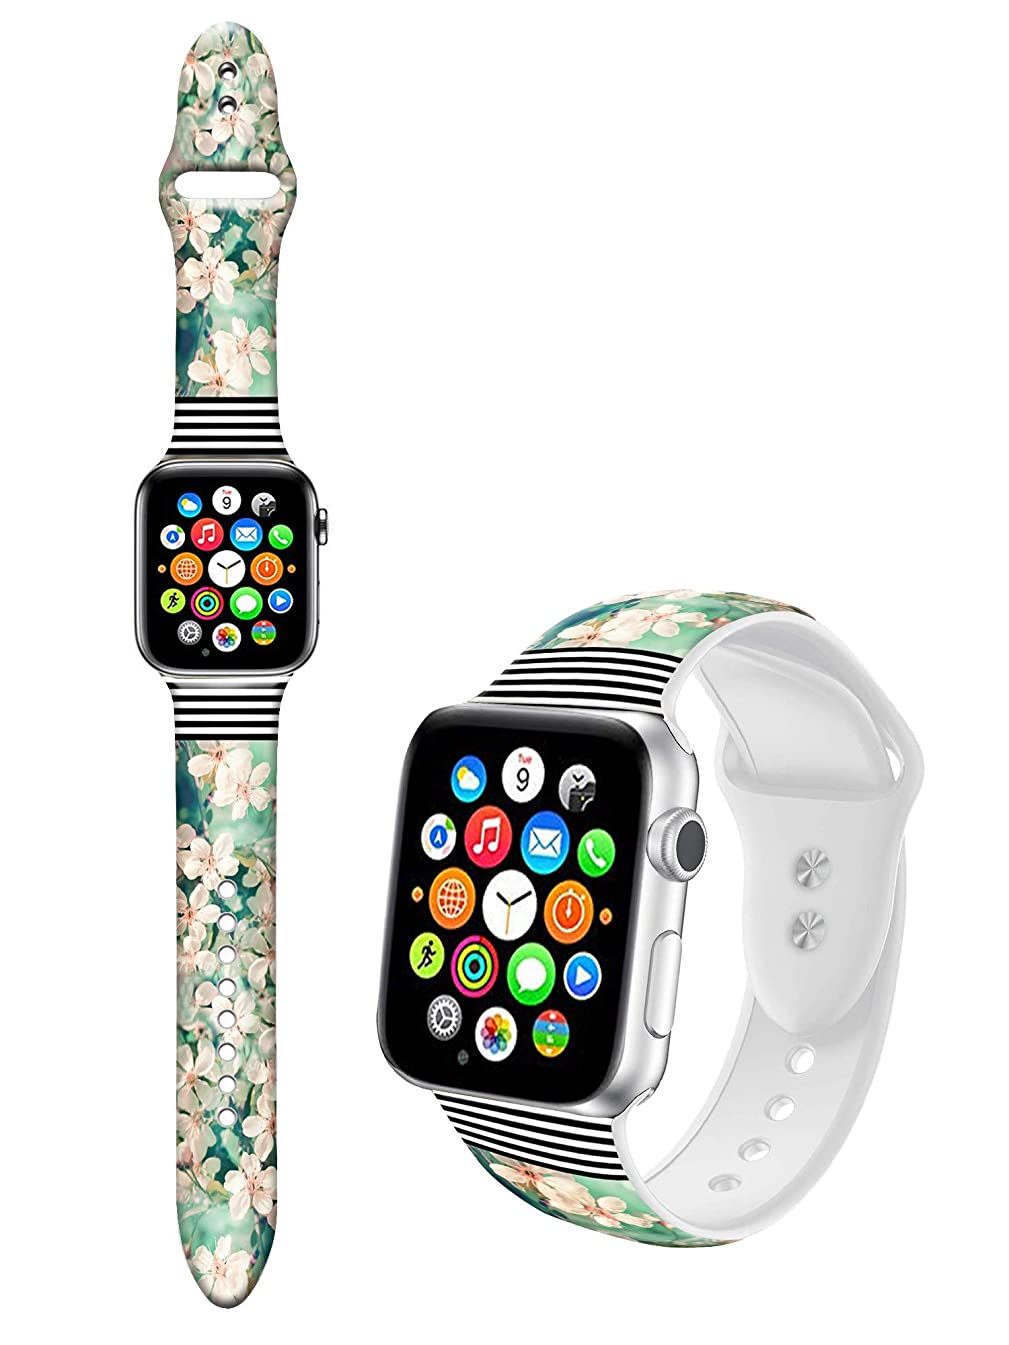 Dseason Sport Bands Compatible with iWatch 40mm, Premium Silicone Strap Womens Bands Compatible for iWatch 38mm/40mm Series 4/3/2/1, M/L Floral Stripes Trend Mix